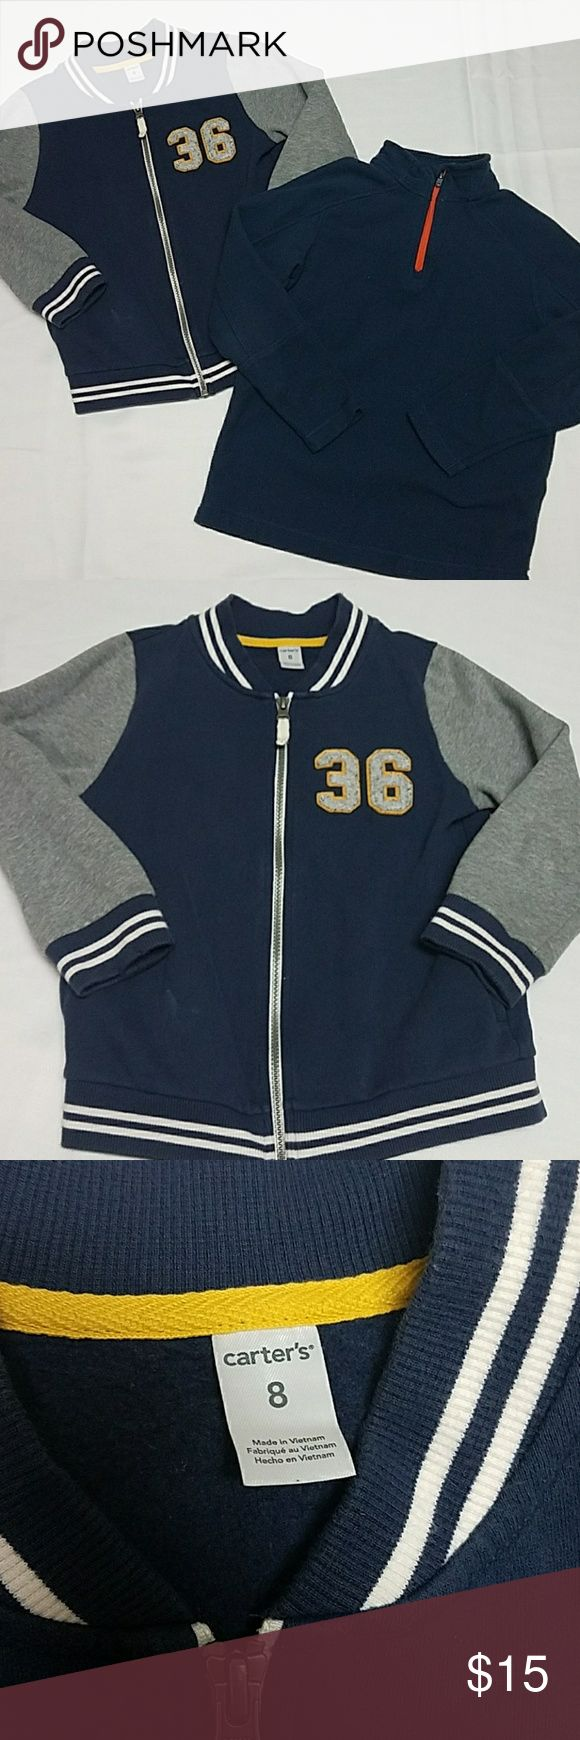 Boys Outerwear Bundle Size 8 Boys Outwear Bundle  1. Carter's Size 8 Varsity Jacket. 80% Cotton, 20% Polyester, Navy Blue with white, patch of the #36   2. Lands End, Size S (8) pullover sweatshirt, Navy Blue with orange accents, 100% Polyester Jackets & Coats